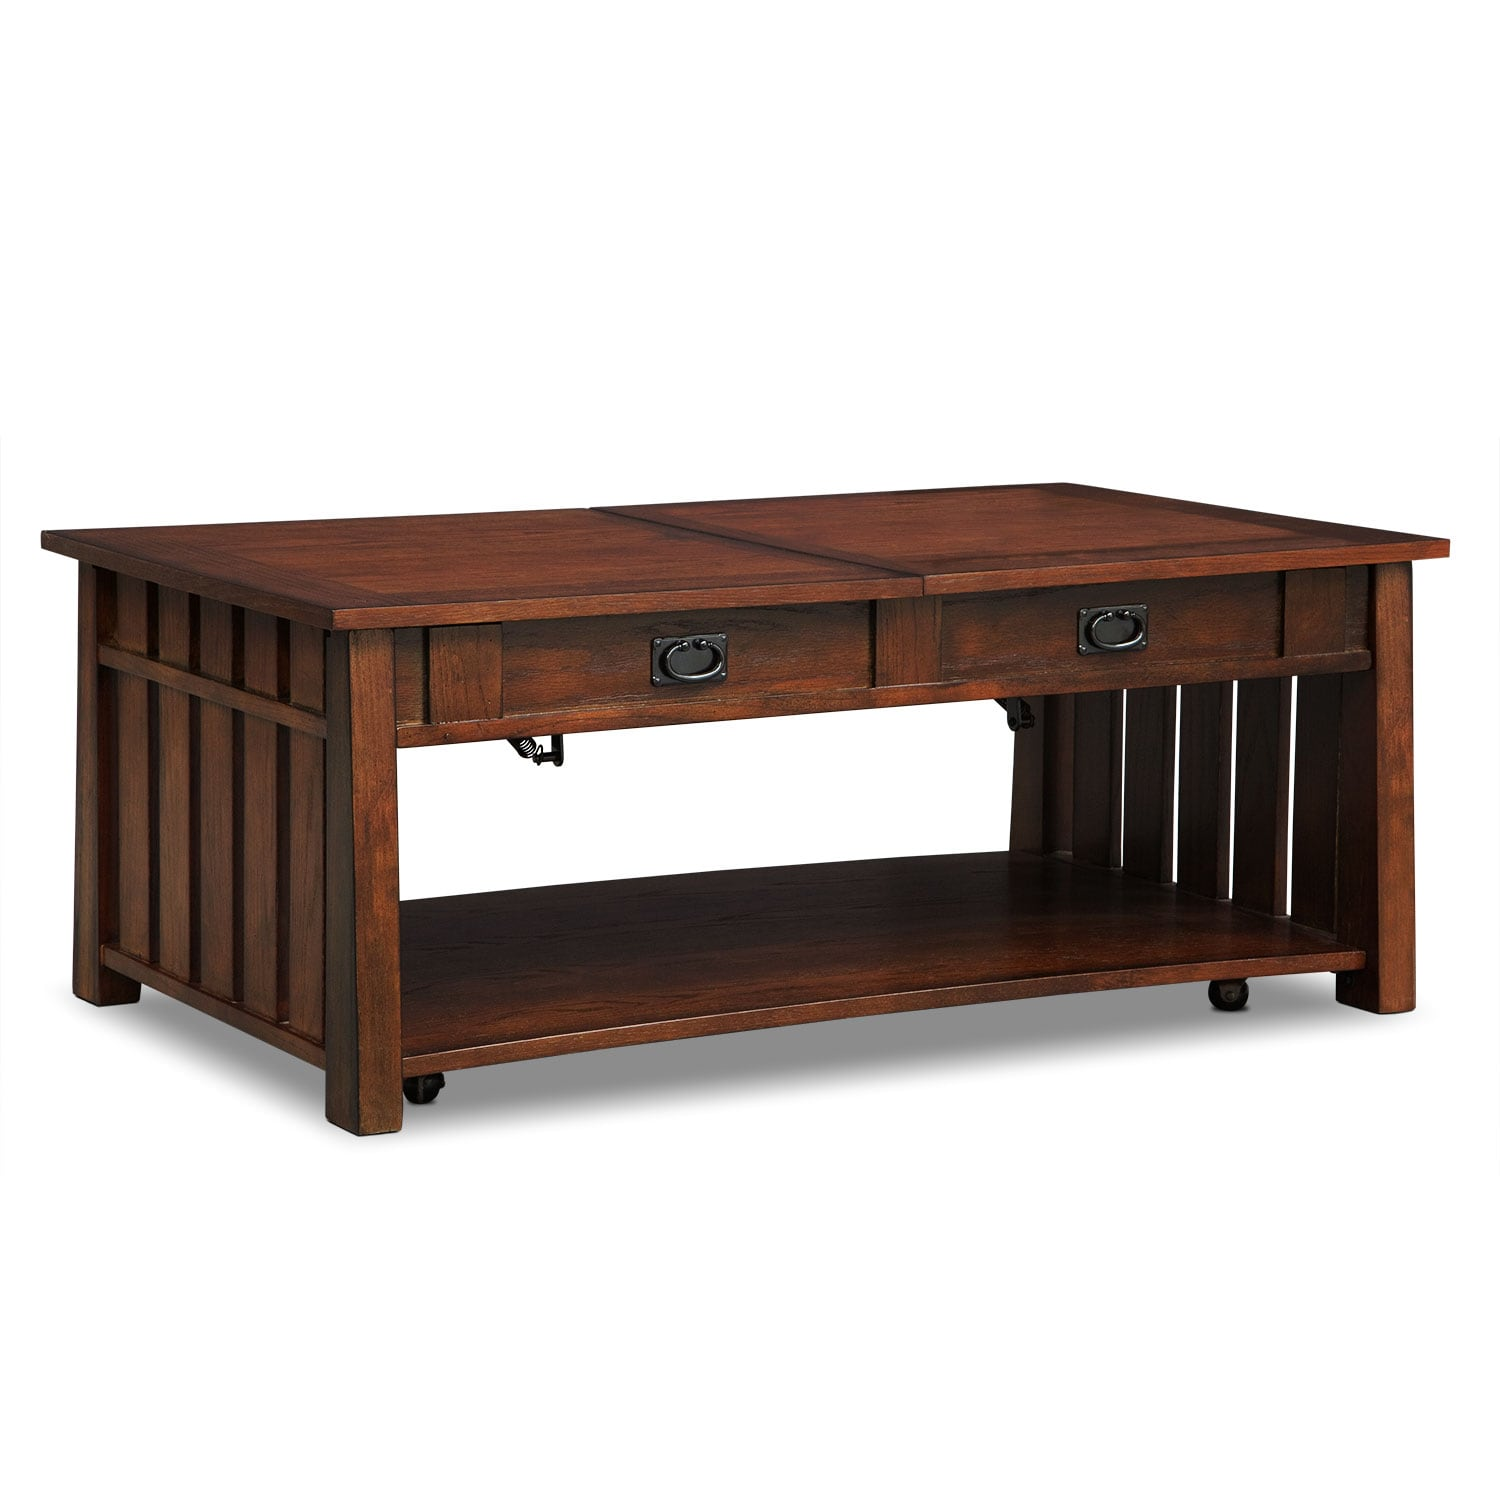 Tribute Lift Top Coffee Table   Cherry